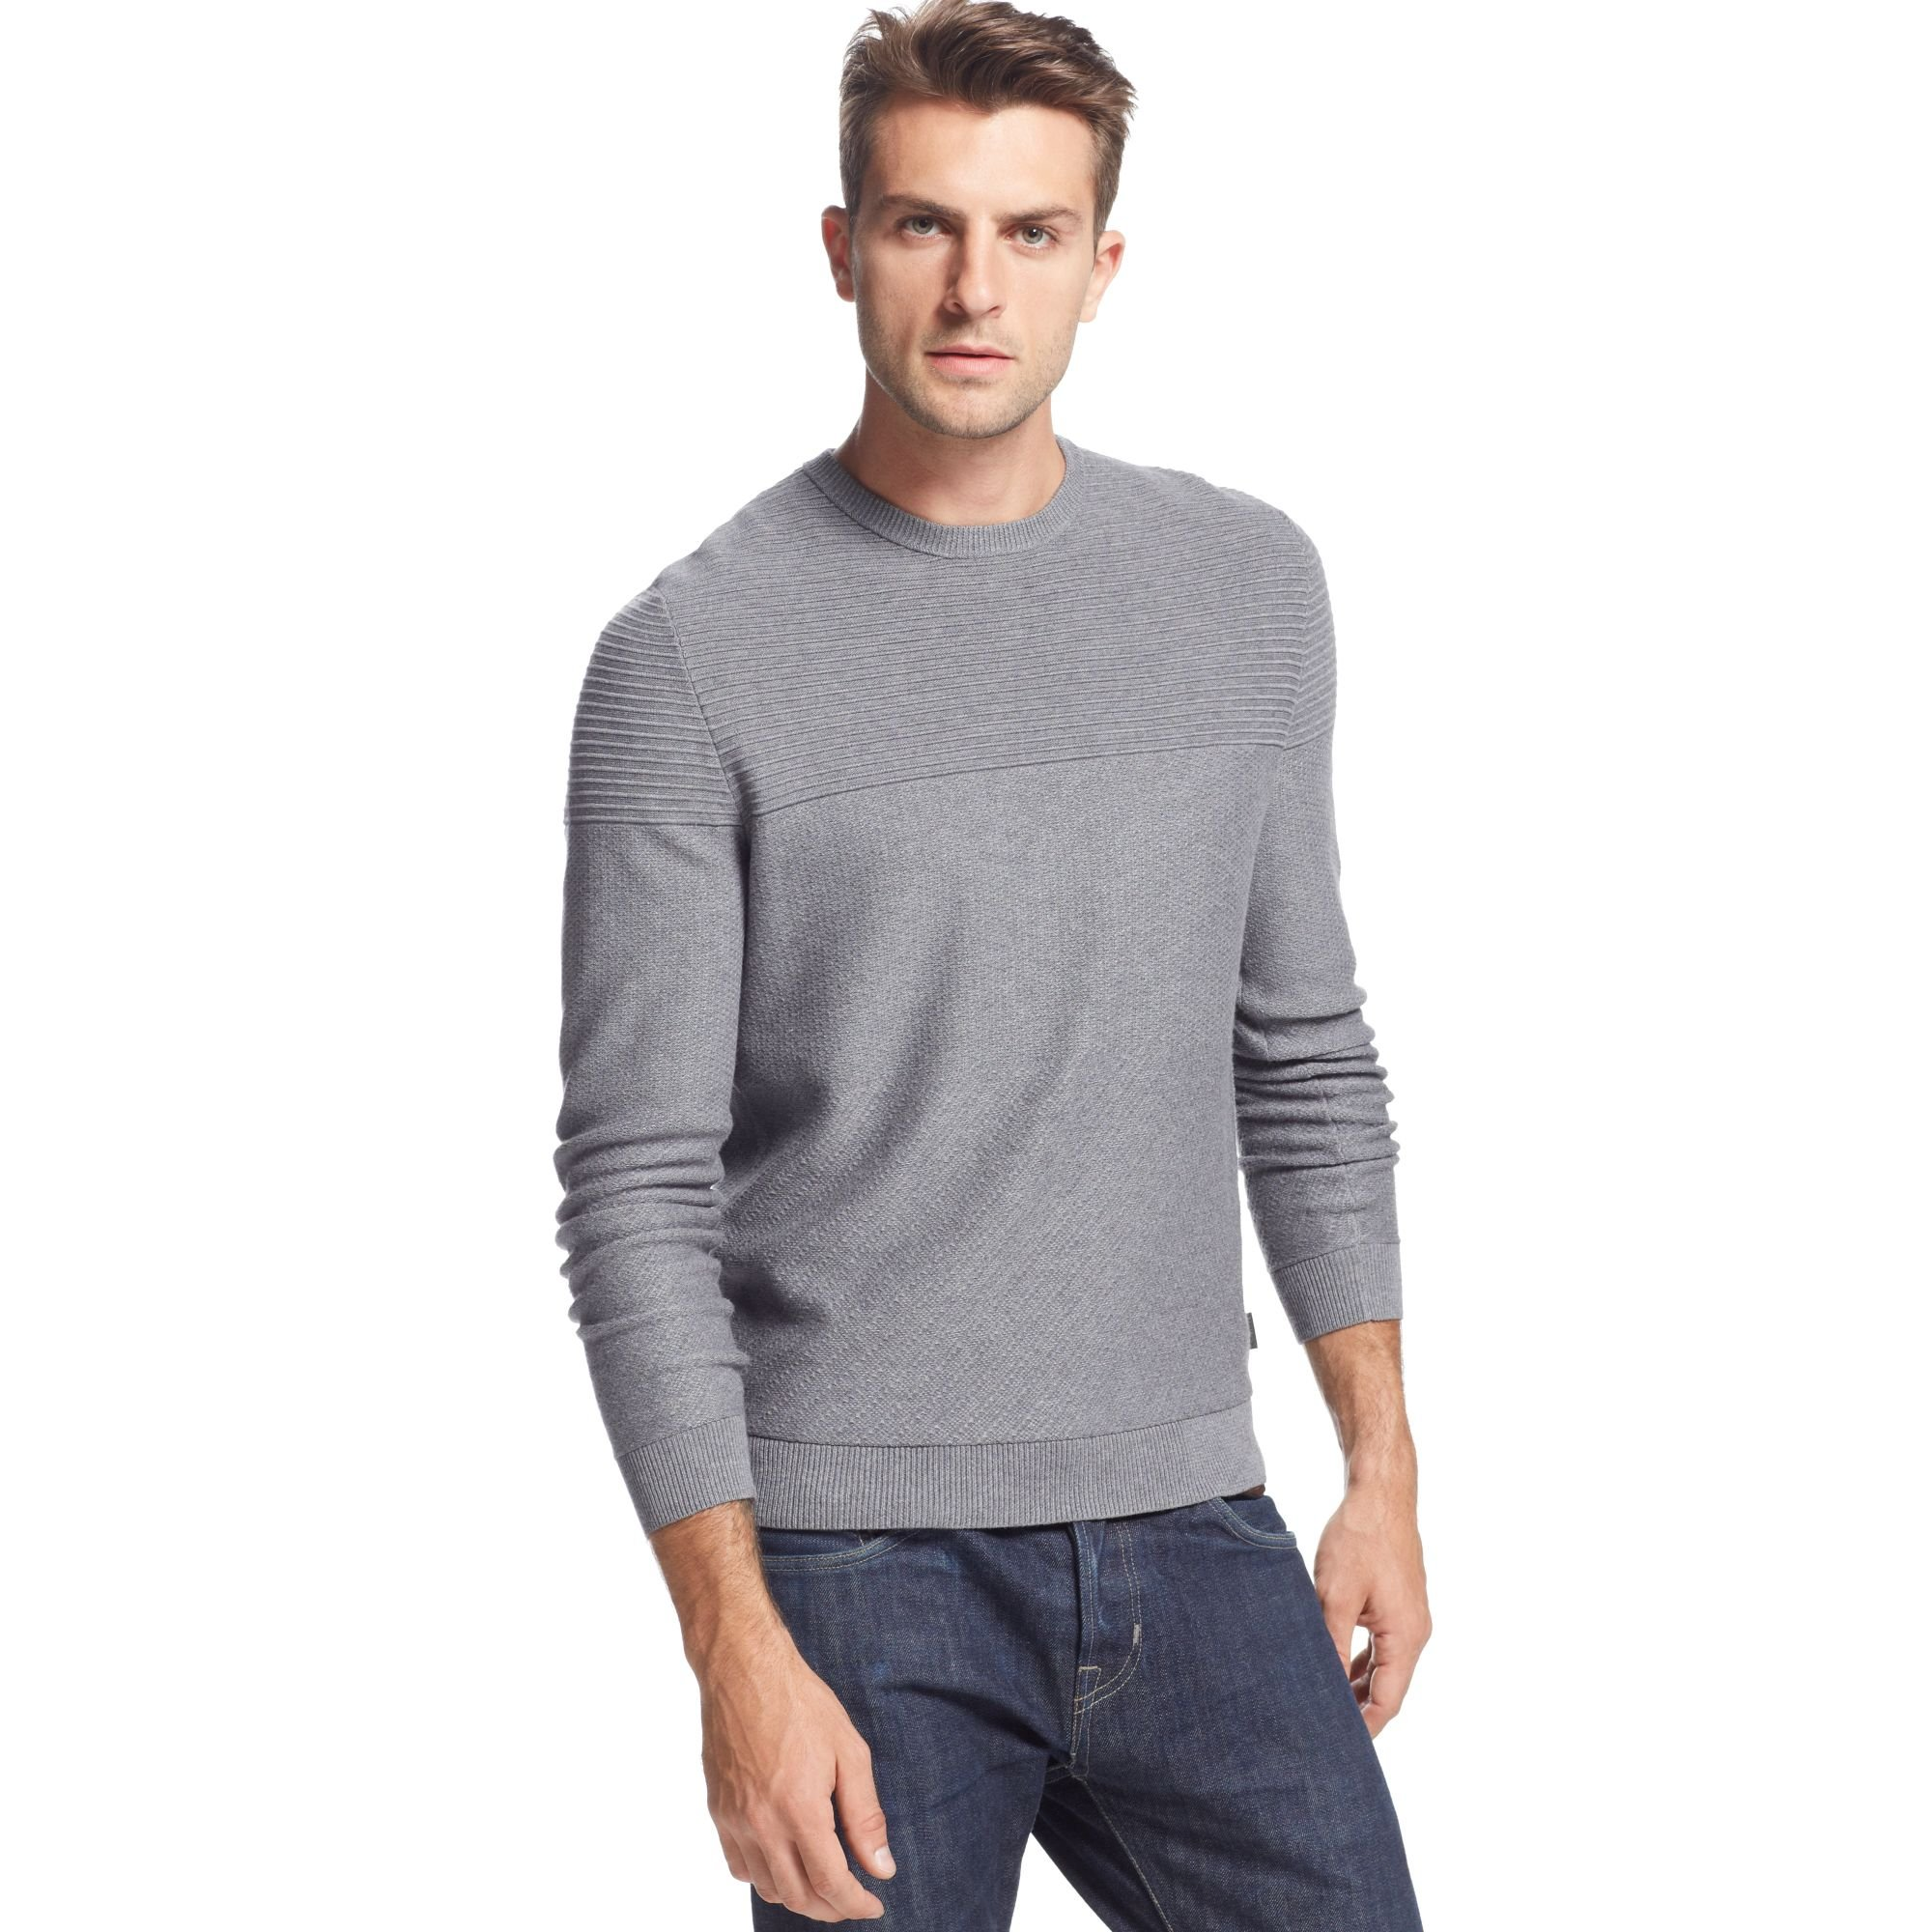 hugo boss boss black sweater niato sweater in gray for men medium. Black Bedroom Furniture Sets. Home Design Ideas